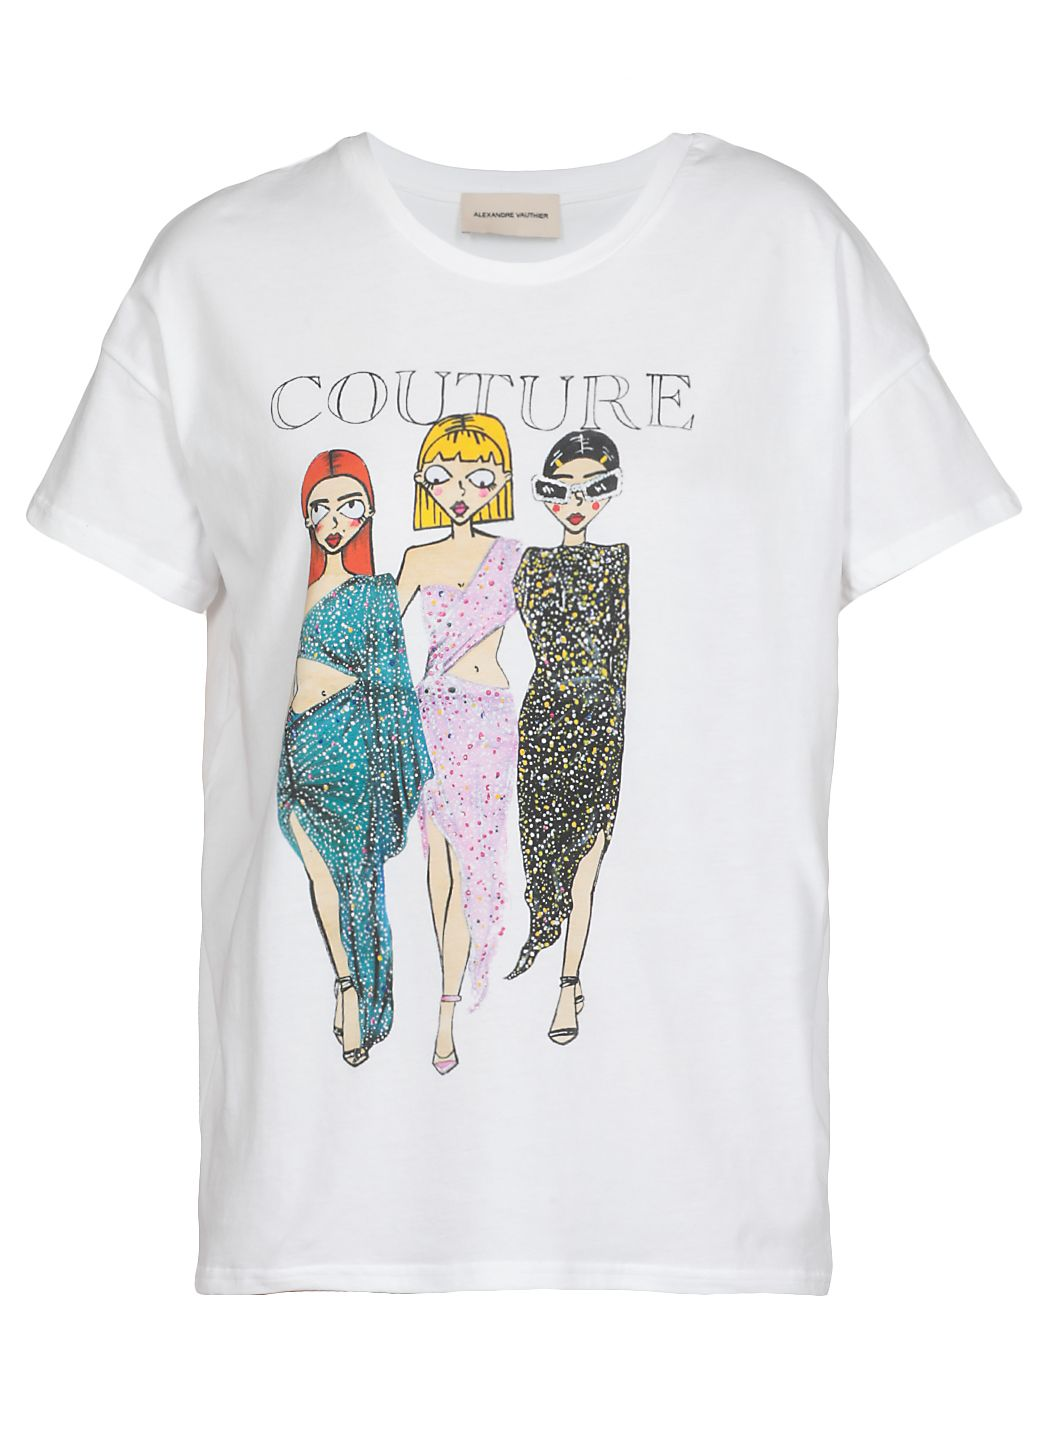 T-shirt in cotone couture